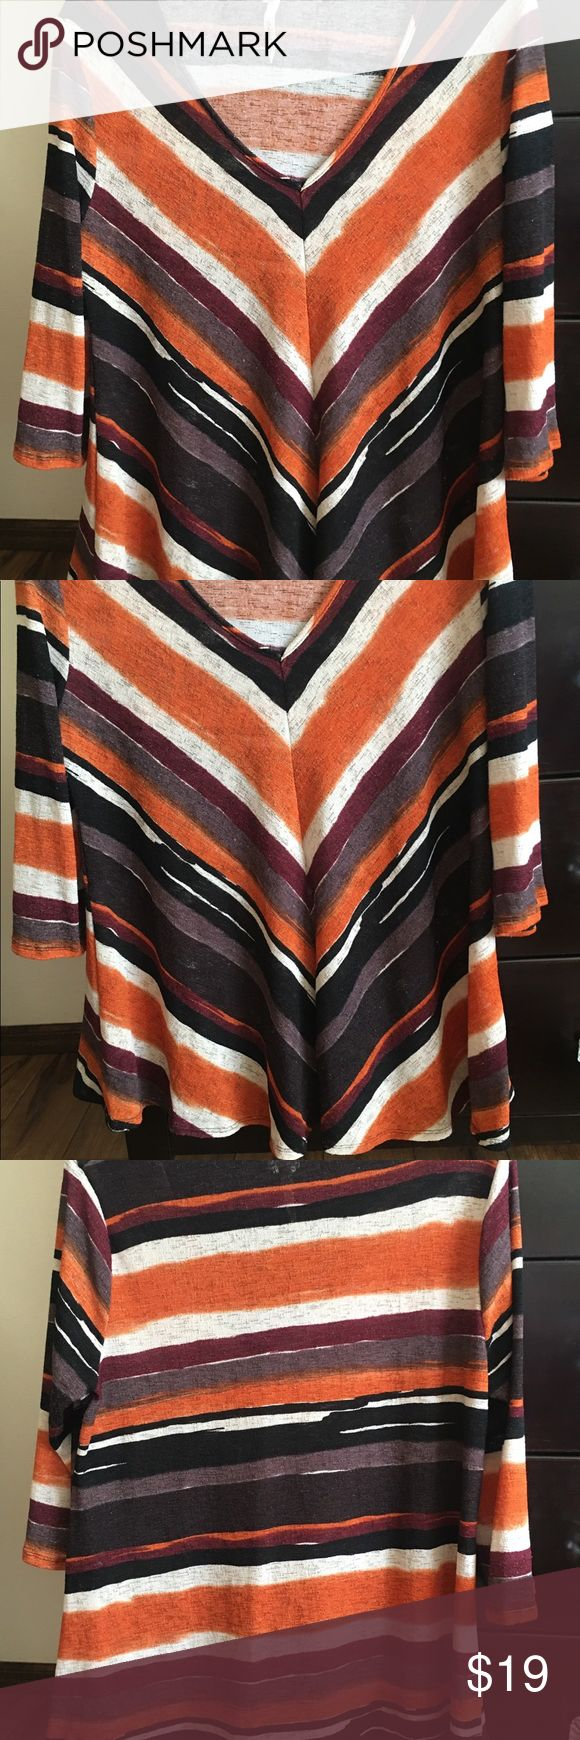 Orange Brown and White Ladies Top Sz XL Orange Brown and White Ladies Top in Size XL. V-neck with seam down the front.  Could fit up to a size 16. Great Fall colors and looks great with black leggings. EUC NY Collection Tops Tees - Long Sleeve